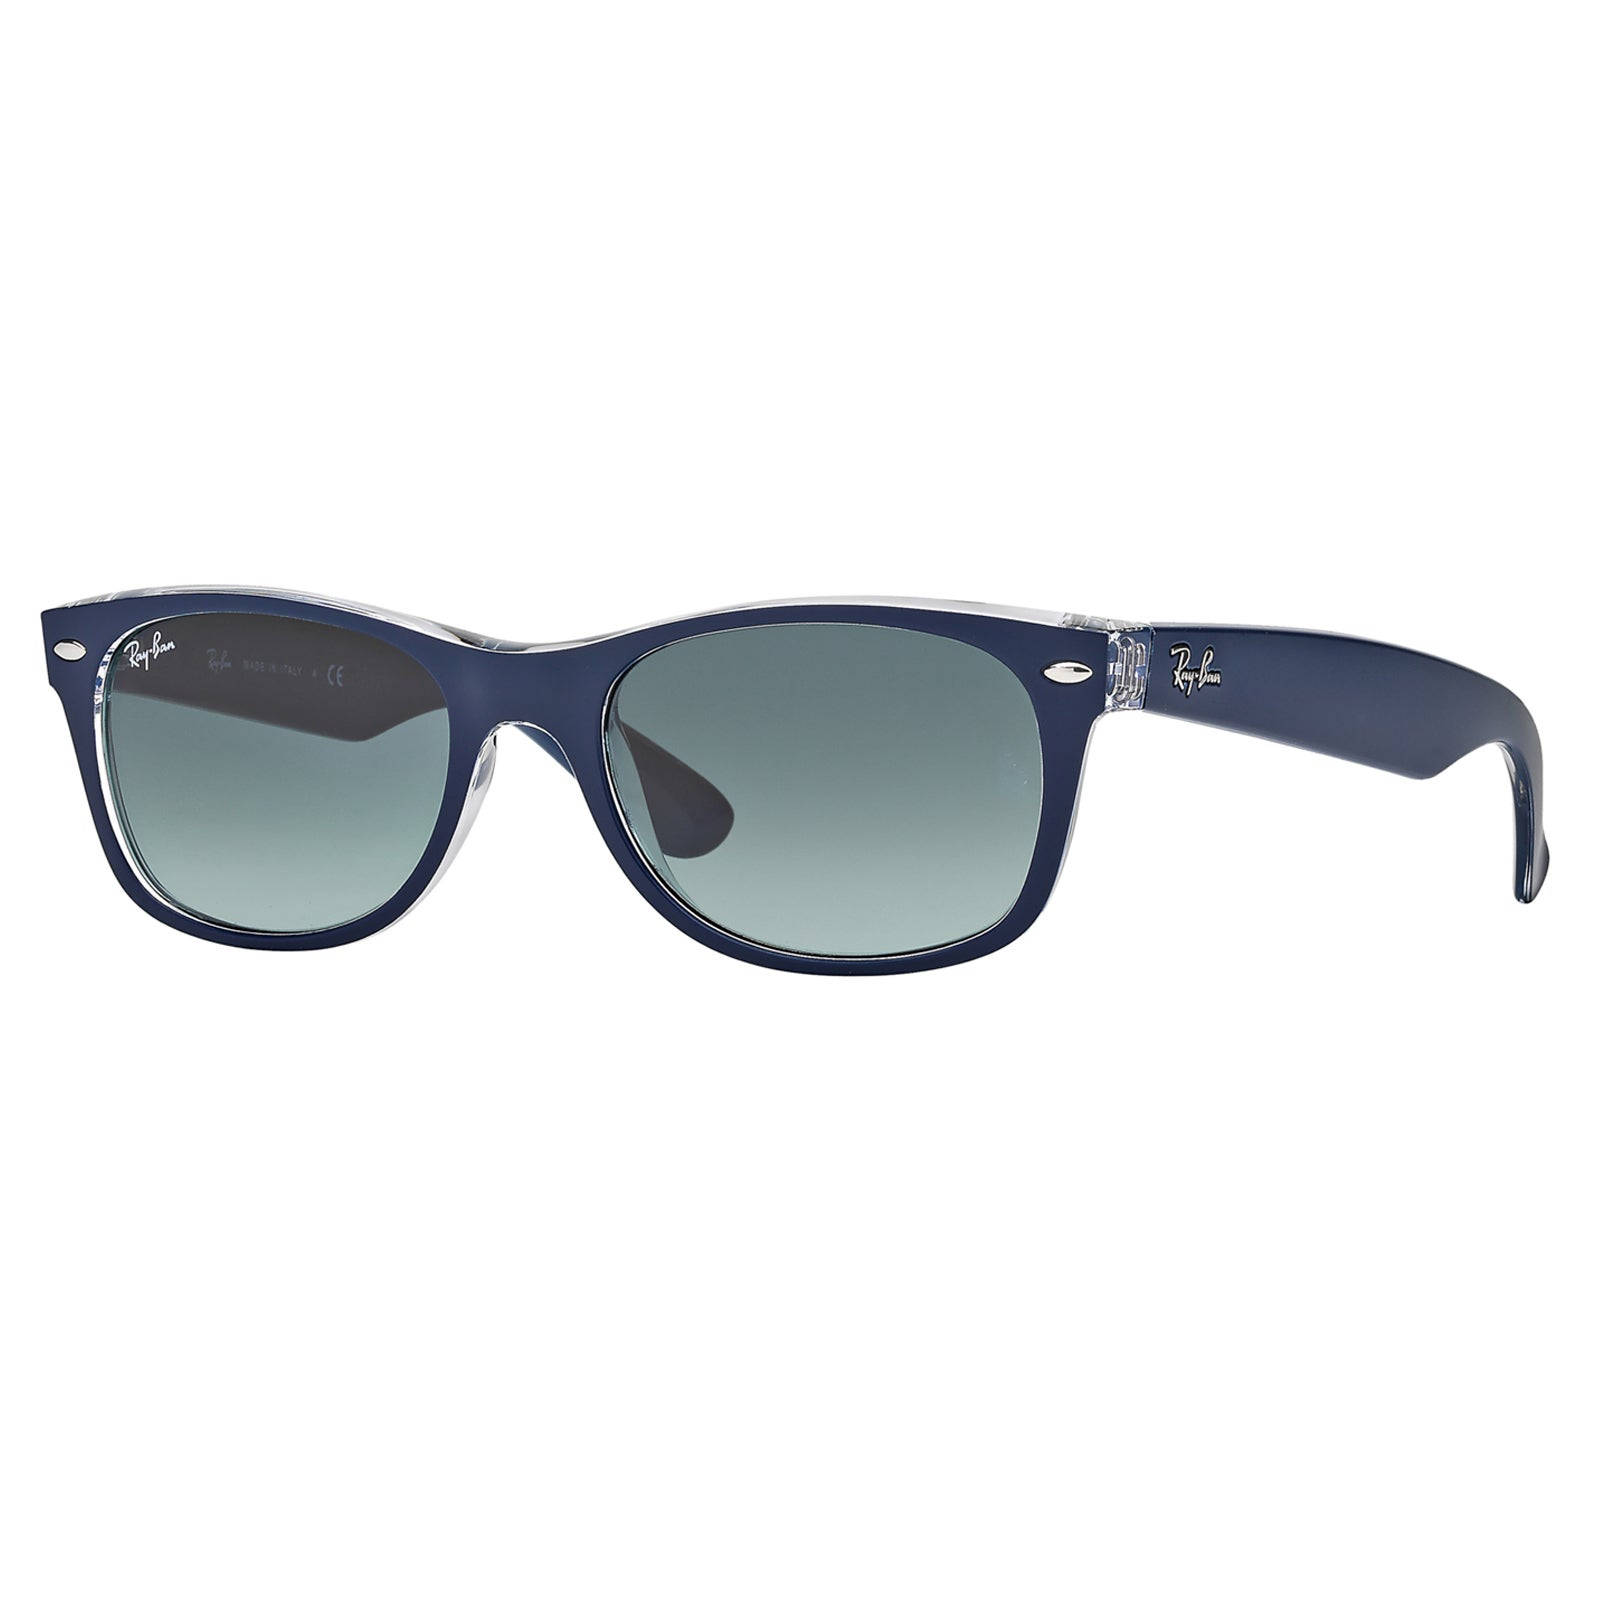 40b06339415 Ray-Ban RB2132 605371 New Wayfarer Color Mix Blue Clear Frame Grey Gradient  55mm Lens Sunglasses